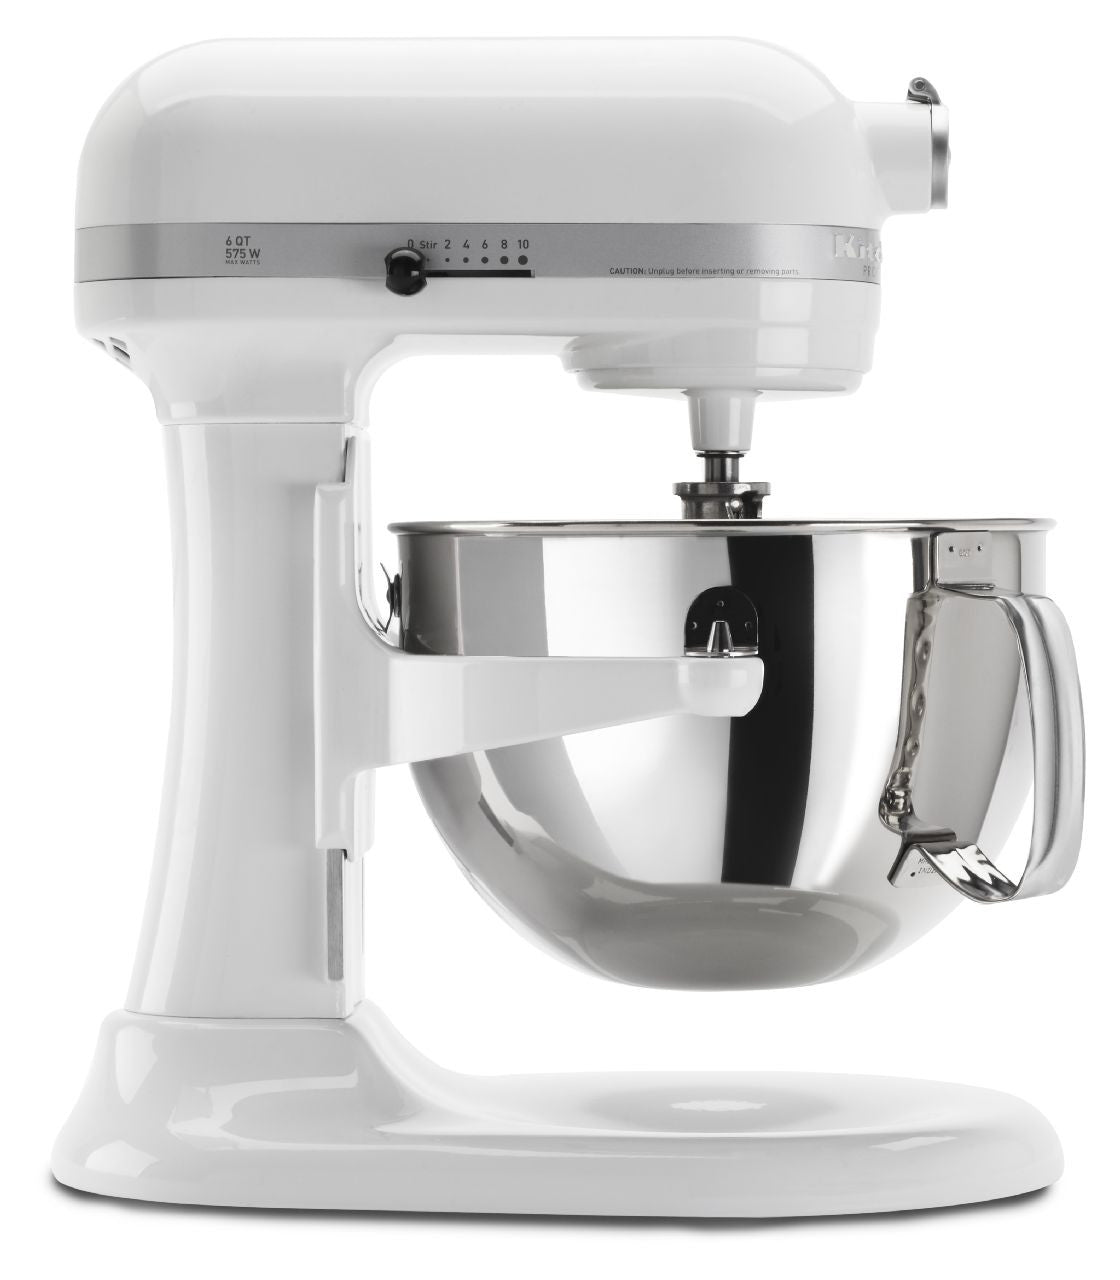 Kitchenaid 6 Qt. Professional 600 Series with Pouring Shield - White KP26M1XWH